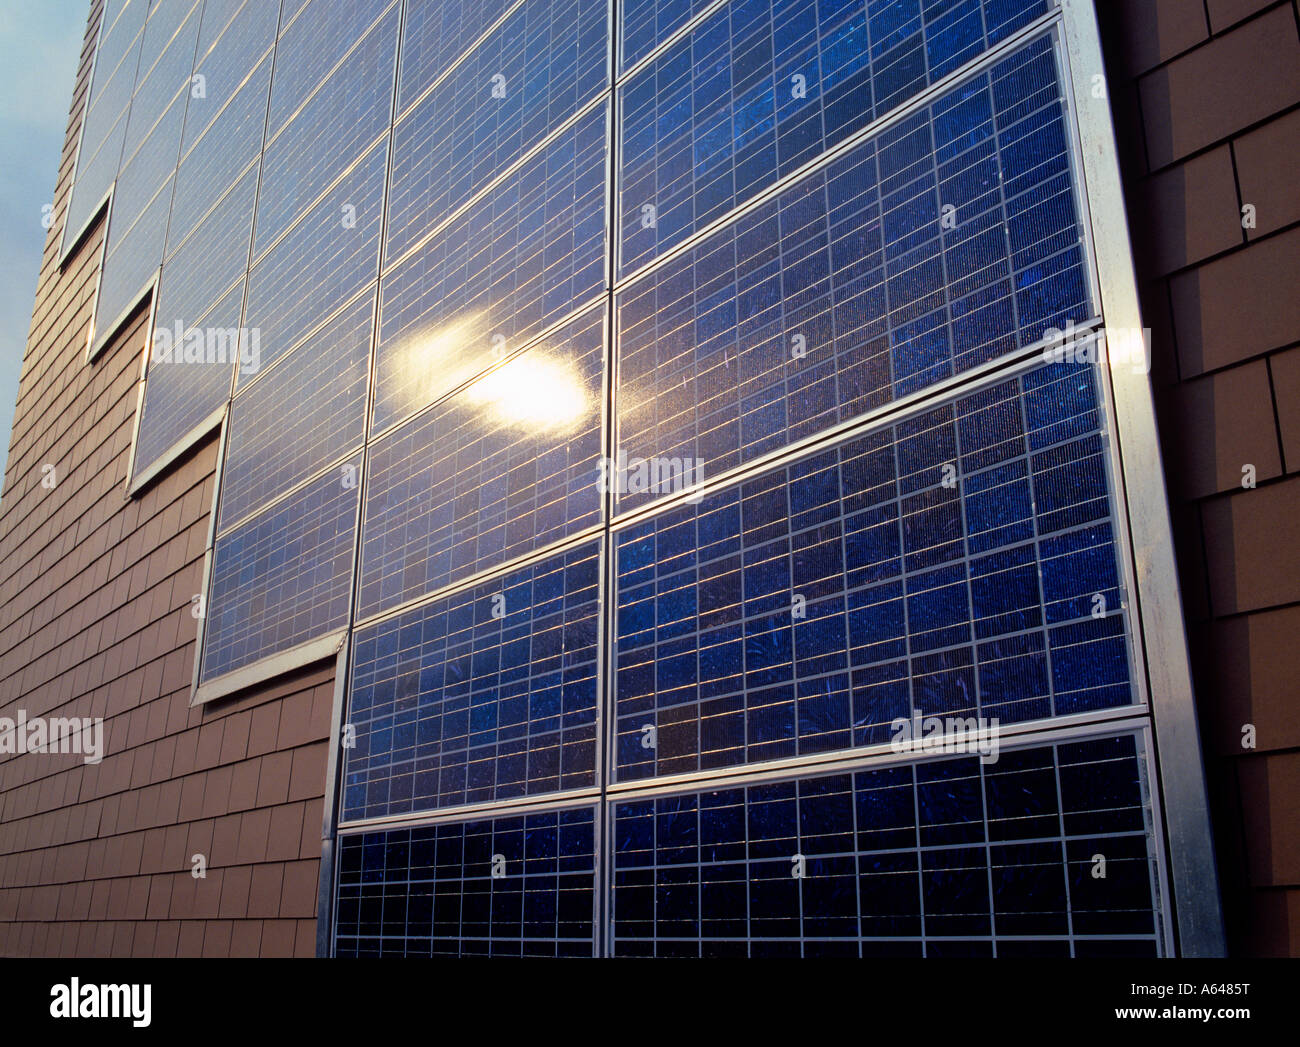 solar power solar panels at facade of apartment building - Stock Image